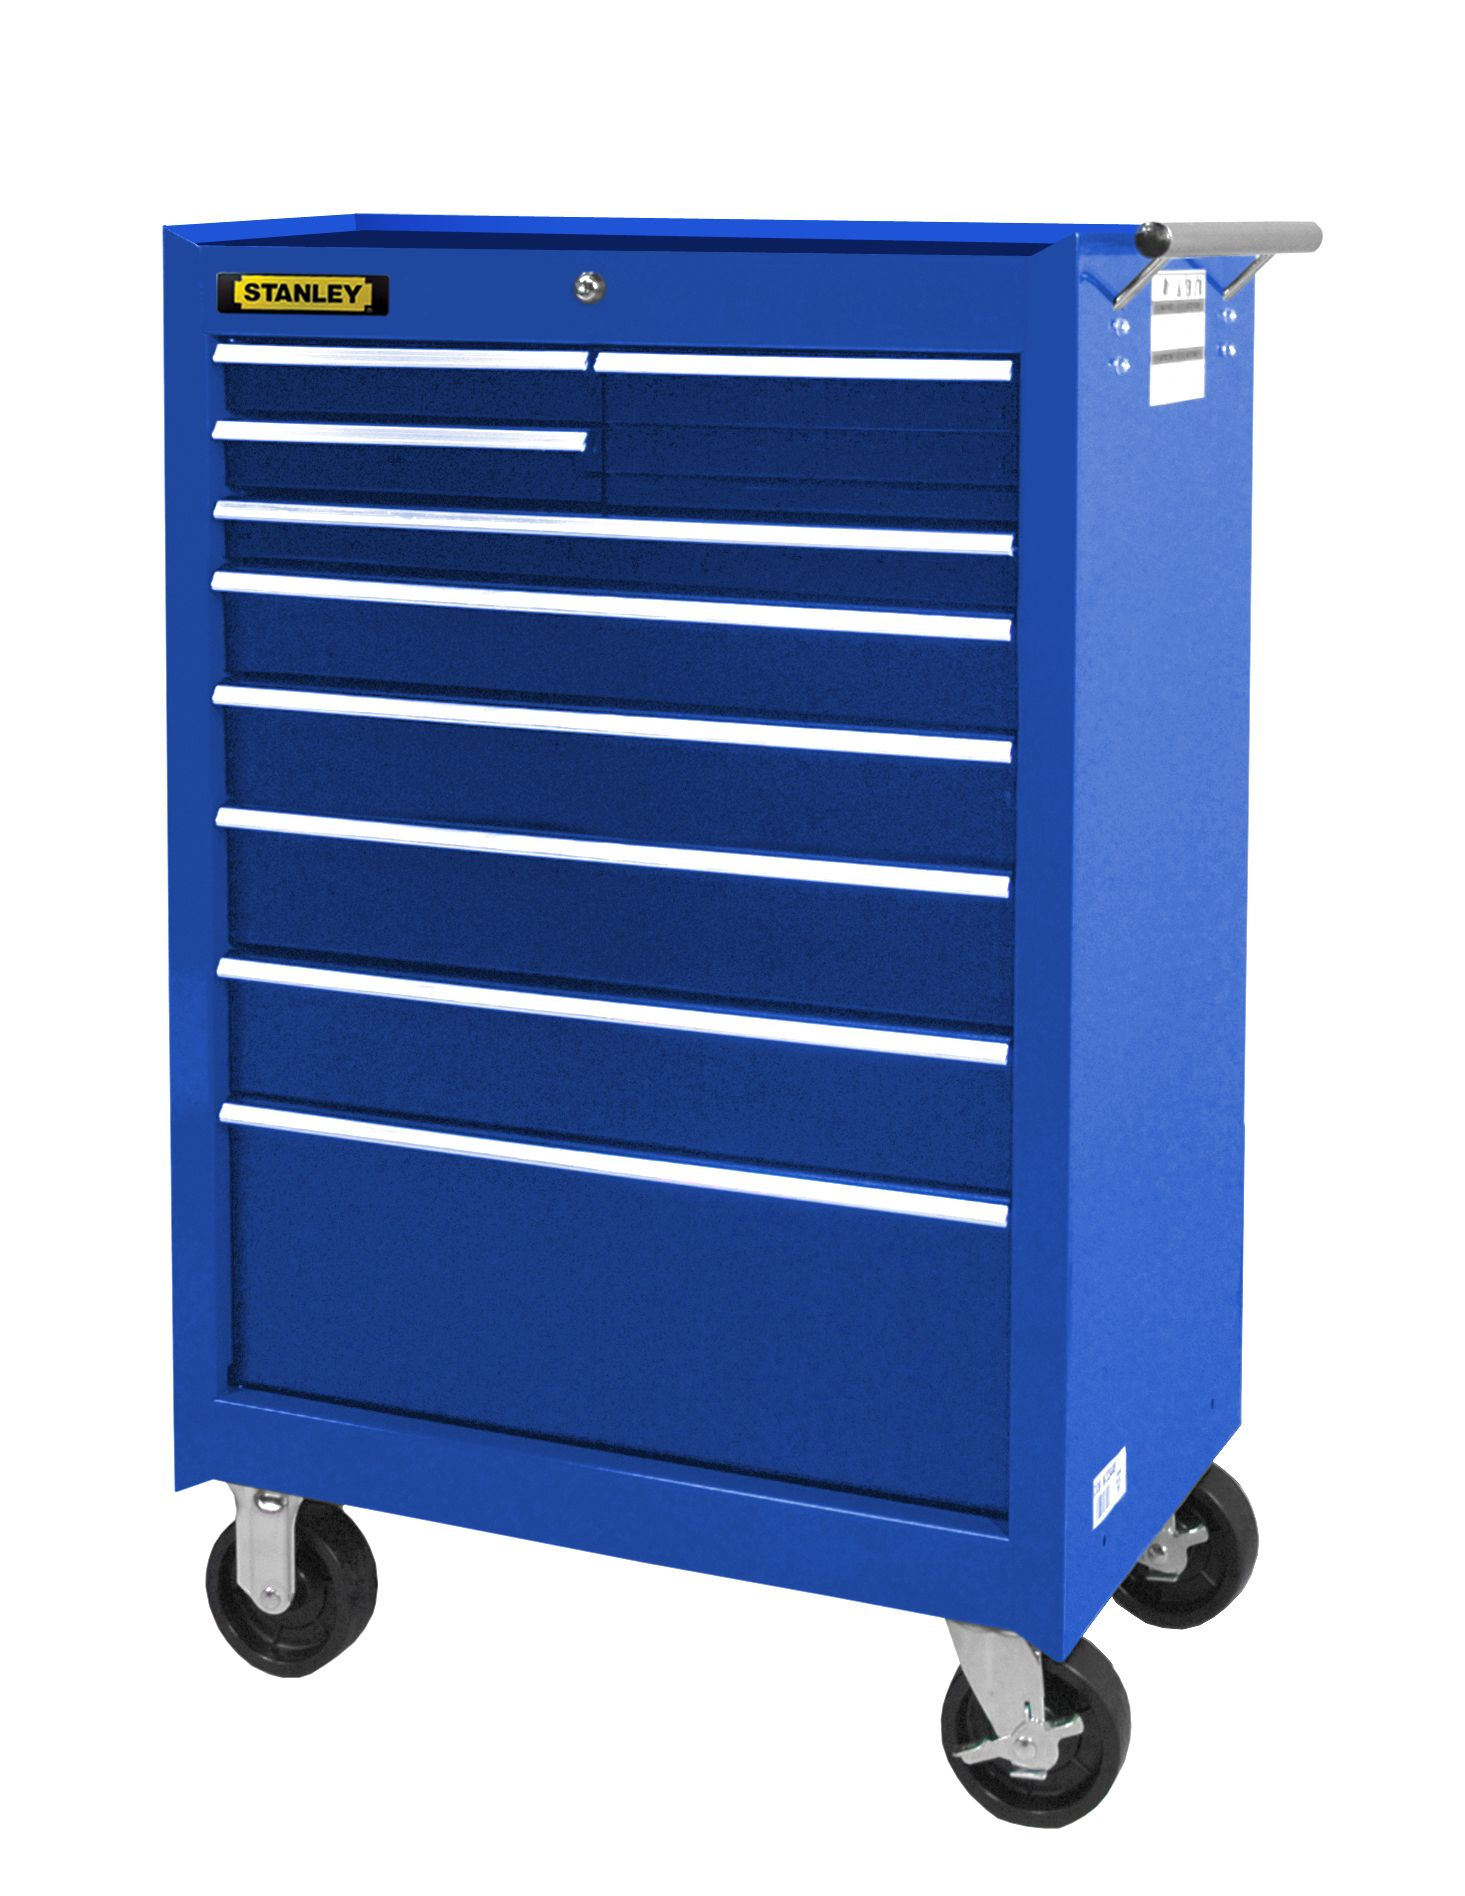 vidmar tool rhpwahecorg the images cabinet collection industrial lista stanely box cabinets vidmarrhbunscoilaniuircom ideas storage of stanley